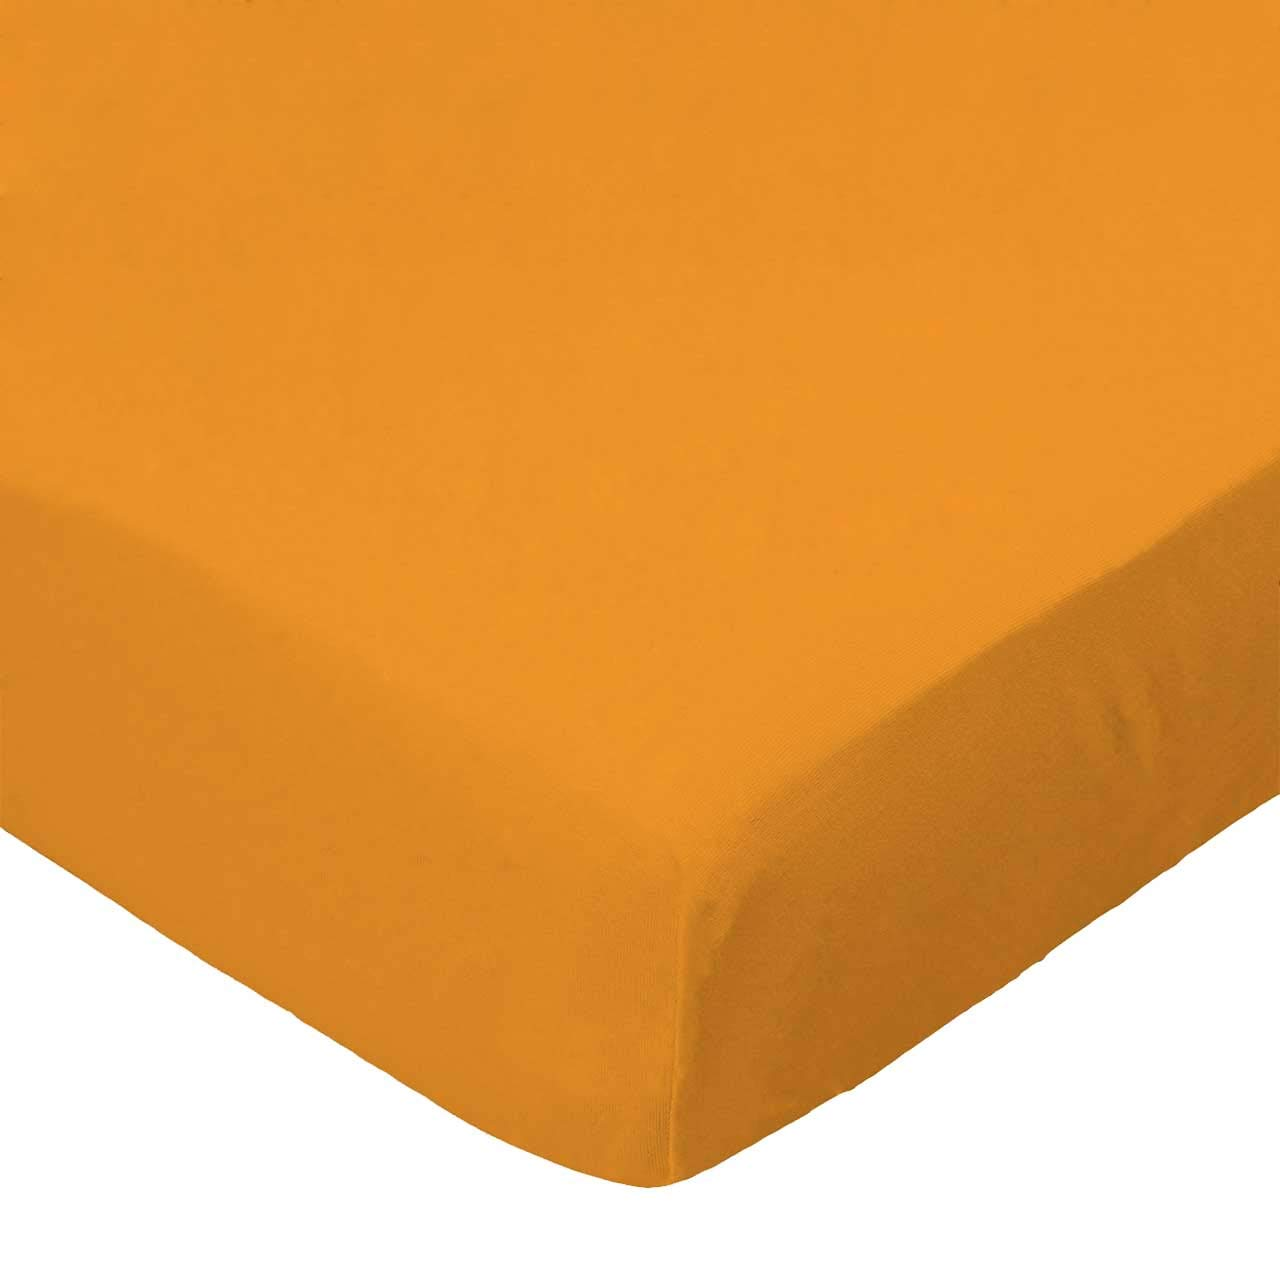 SheetWorld Fitted Bassinet Sheet - Solid Orange Woven - Made In USA by sheetworld   B004LC35C8